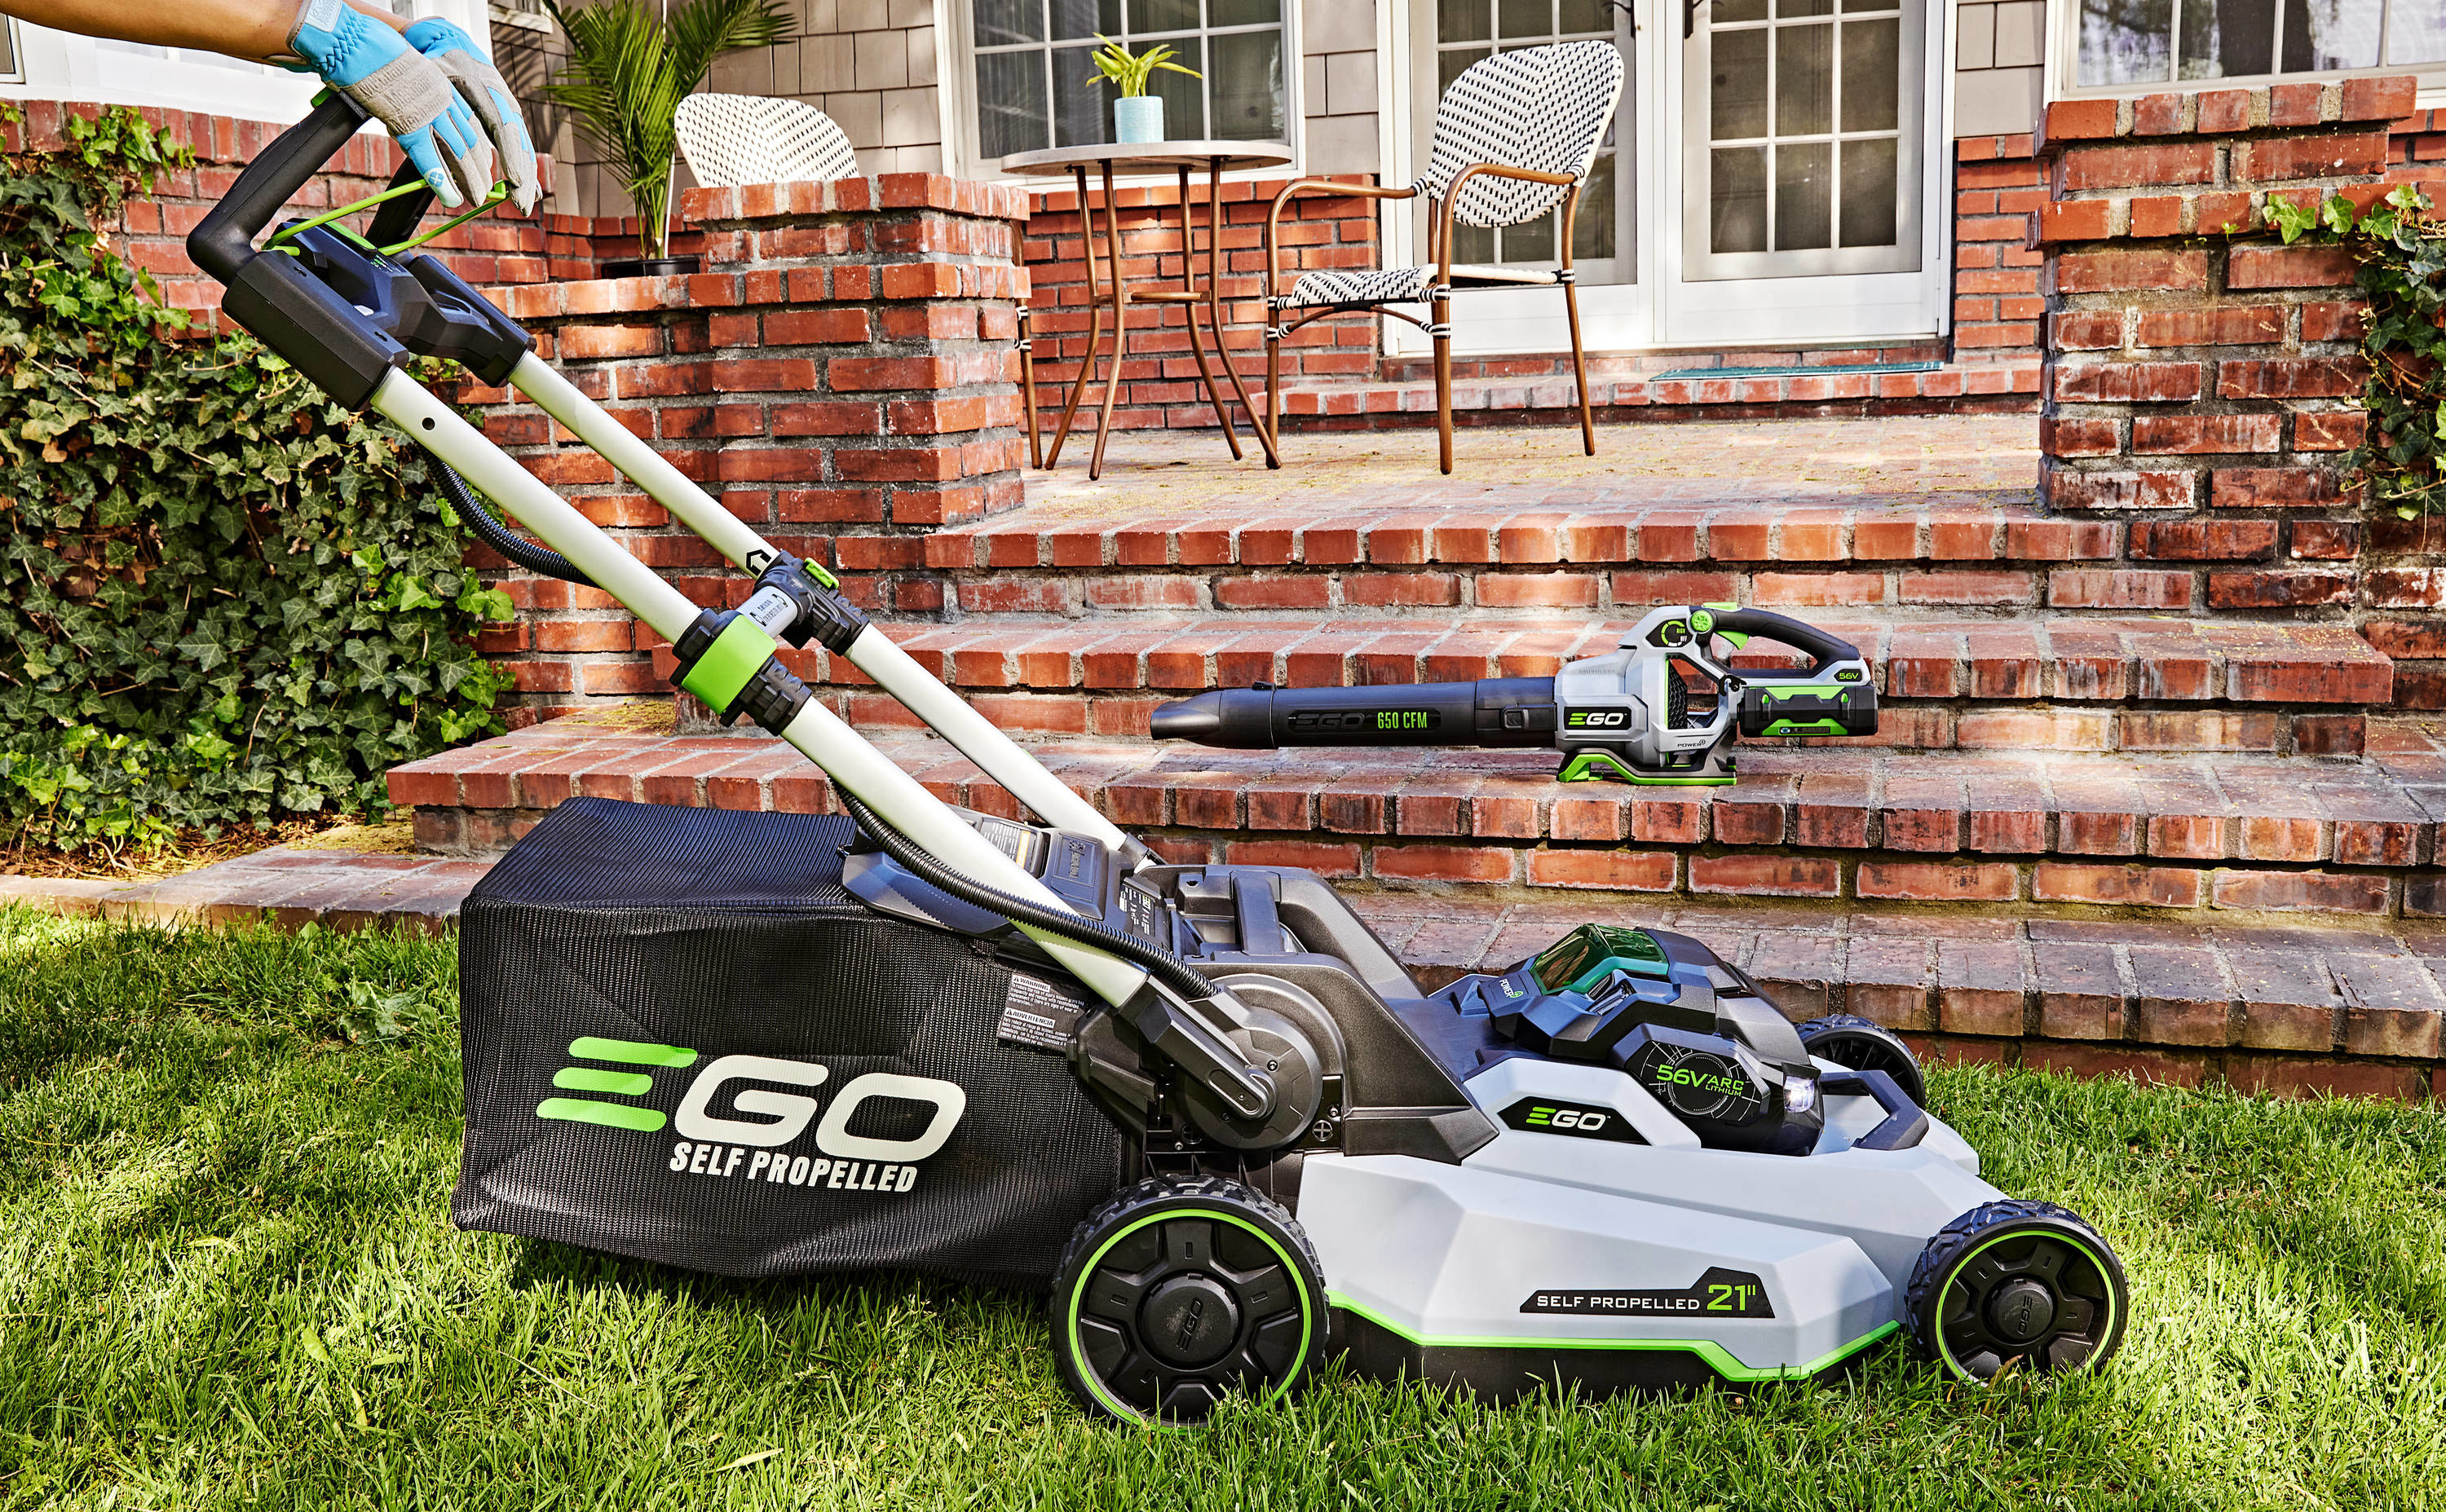 An image of a cordless electric lawnmower